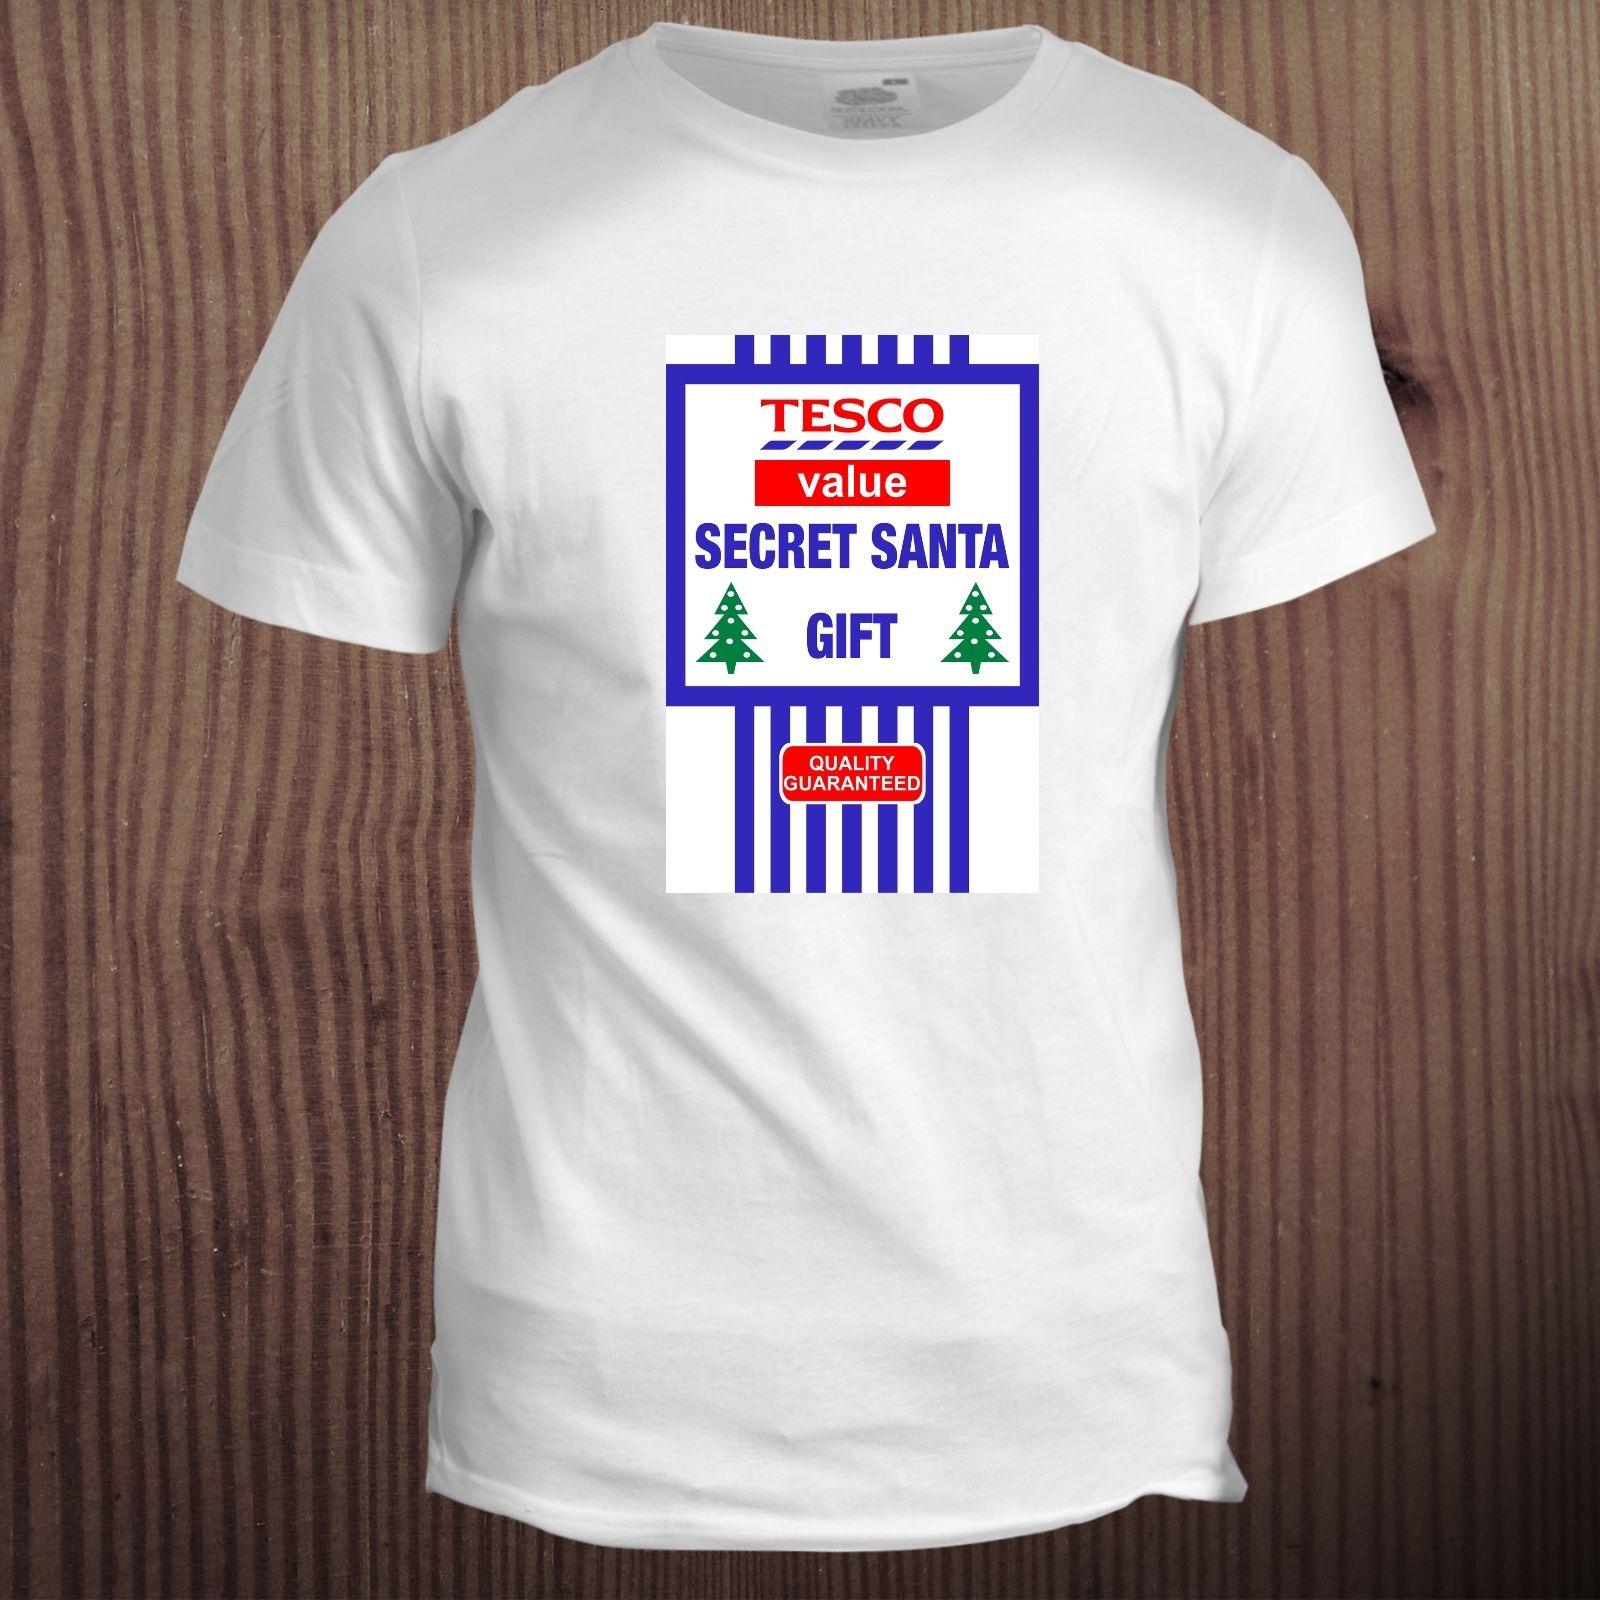 Secret Santa Xmas Christmas Festive Gift Present Stocking Filler T Shirt Fashion Cotton T-Shirts Fashion Design Free Shipping